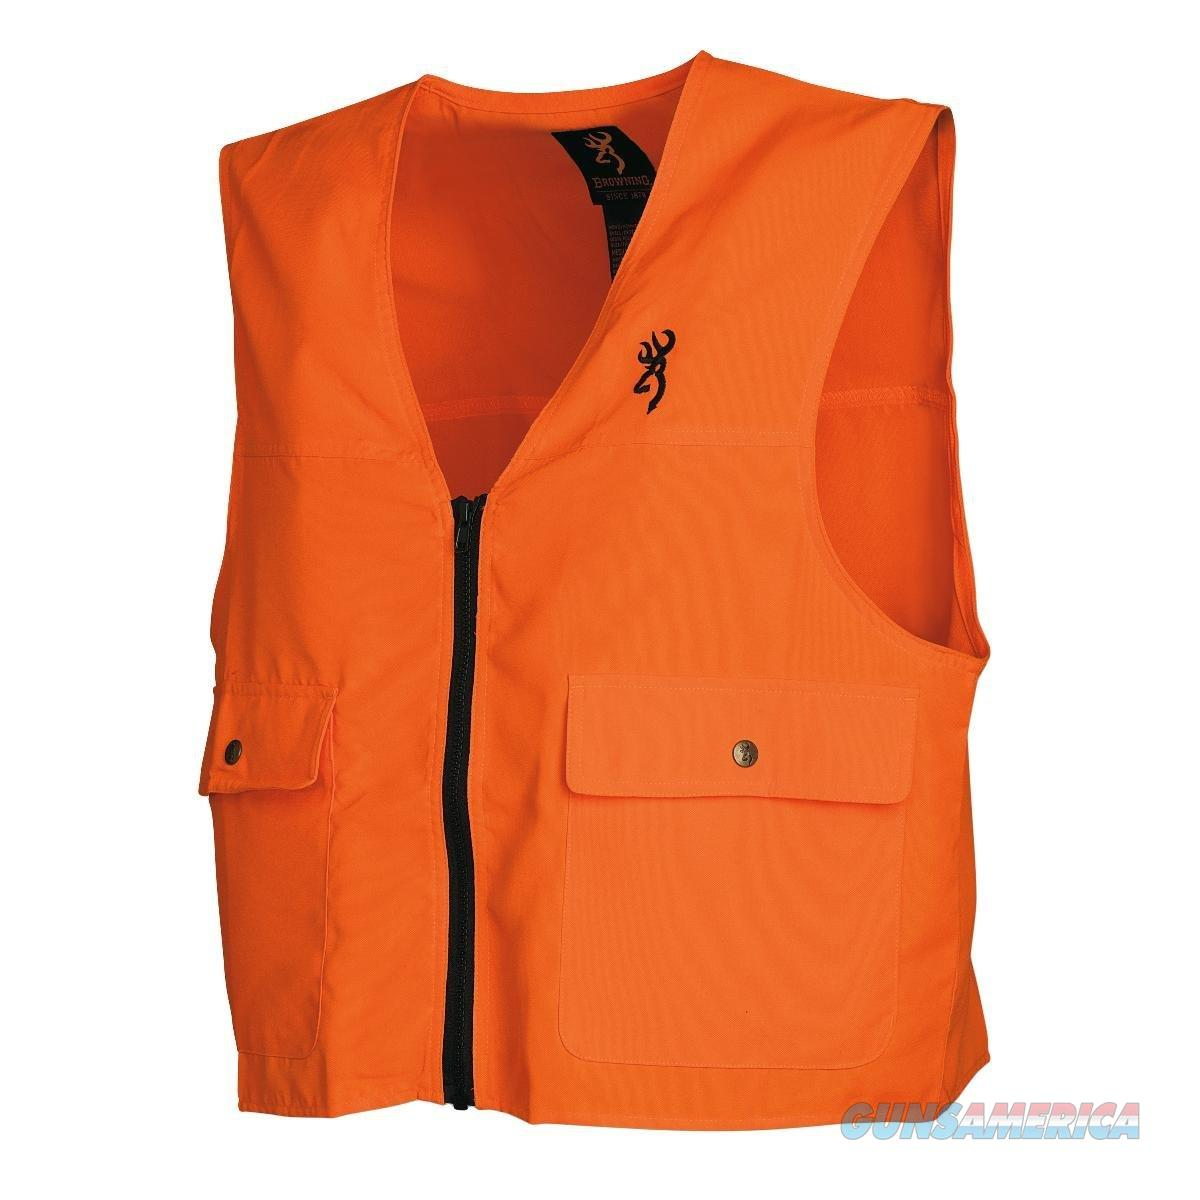 Browning Safety Vest Large Blaze Orange  Non-Guns > Hunting Clothing and Equipment > Clothing > Blaze Orange